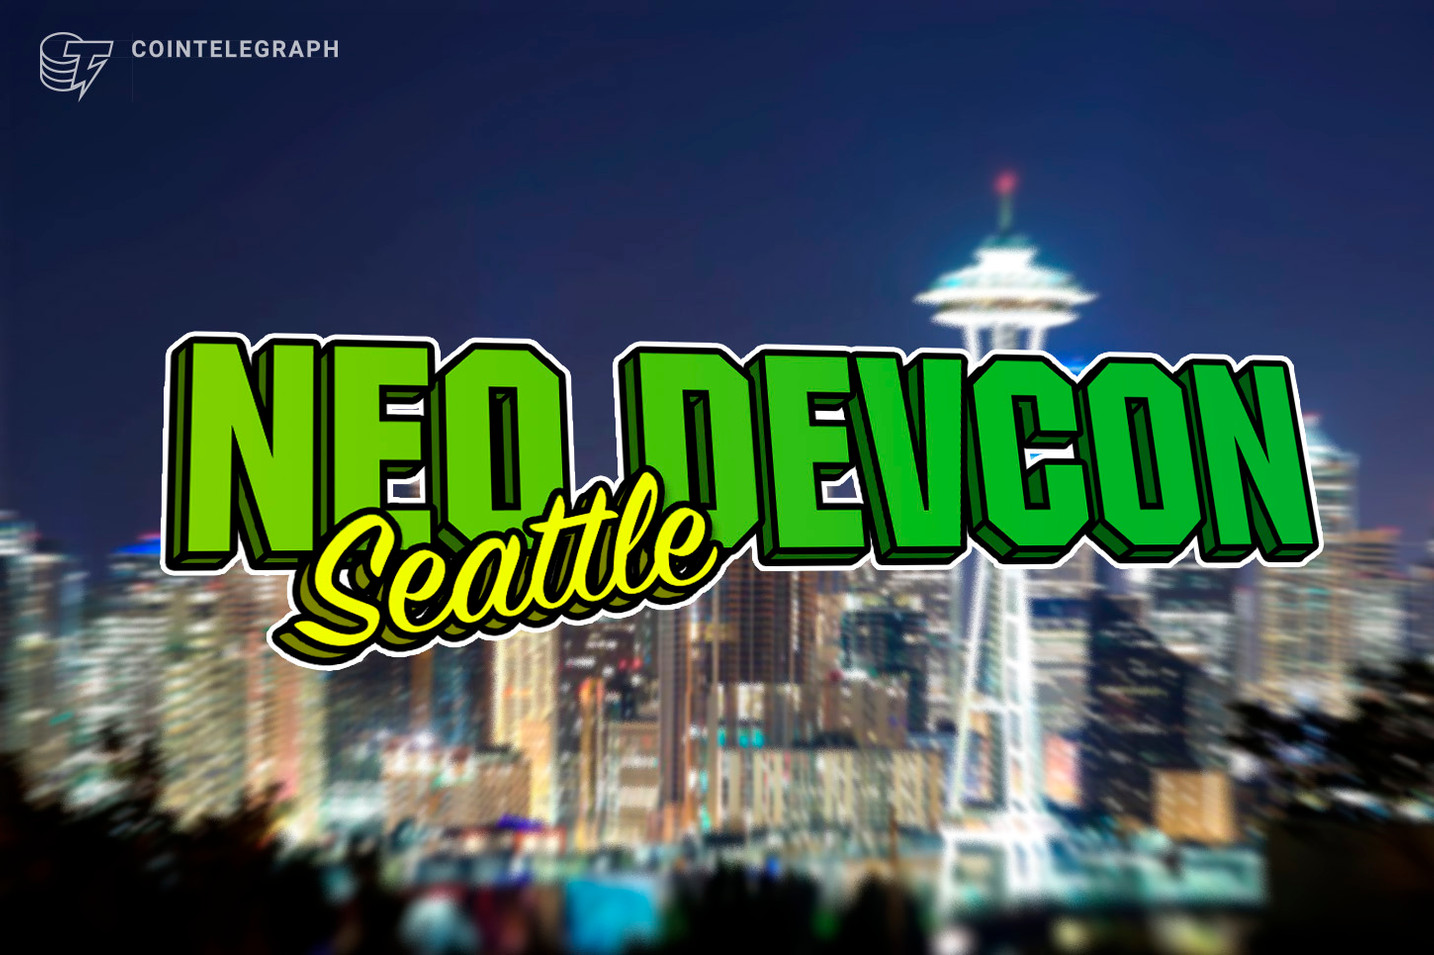 Chinese Giant Welcomes Future Blockchain Talent With Free Tickets to Seattle DevCon, Ahead of NEO 3.0 Announcement